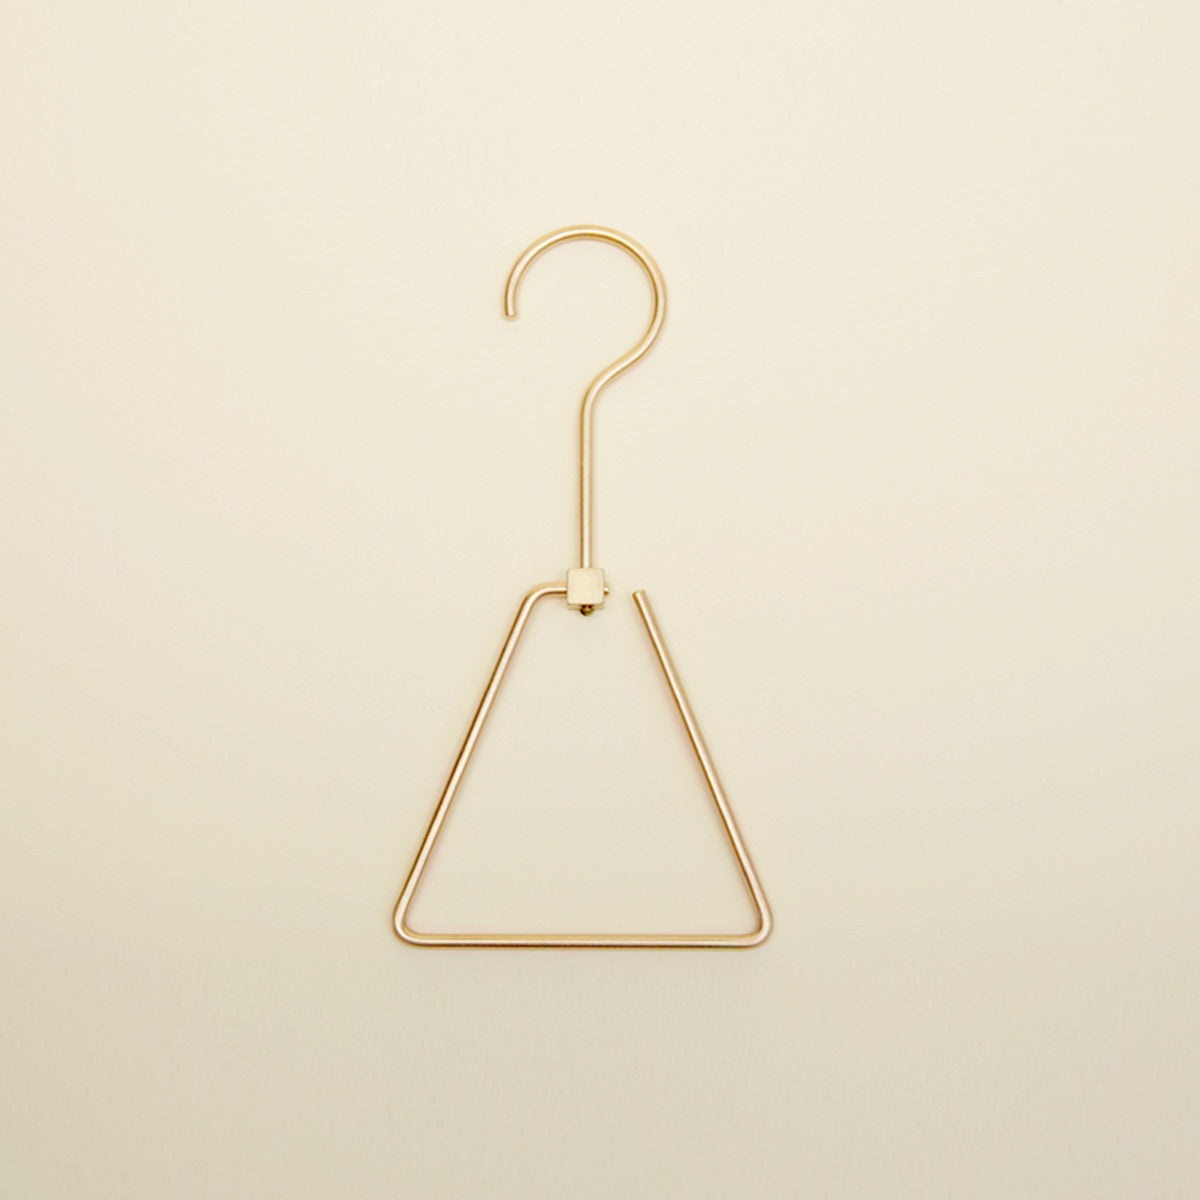 Brass Triangle Hanger